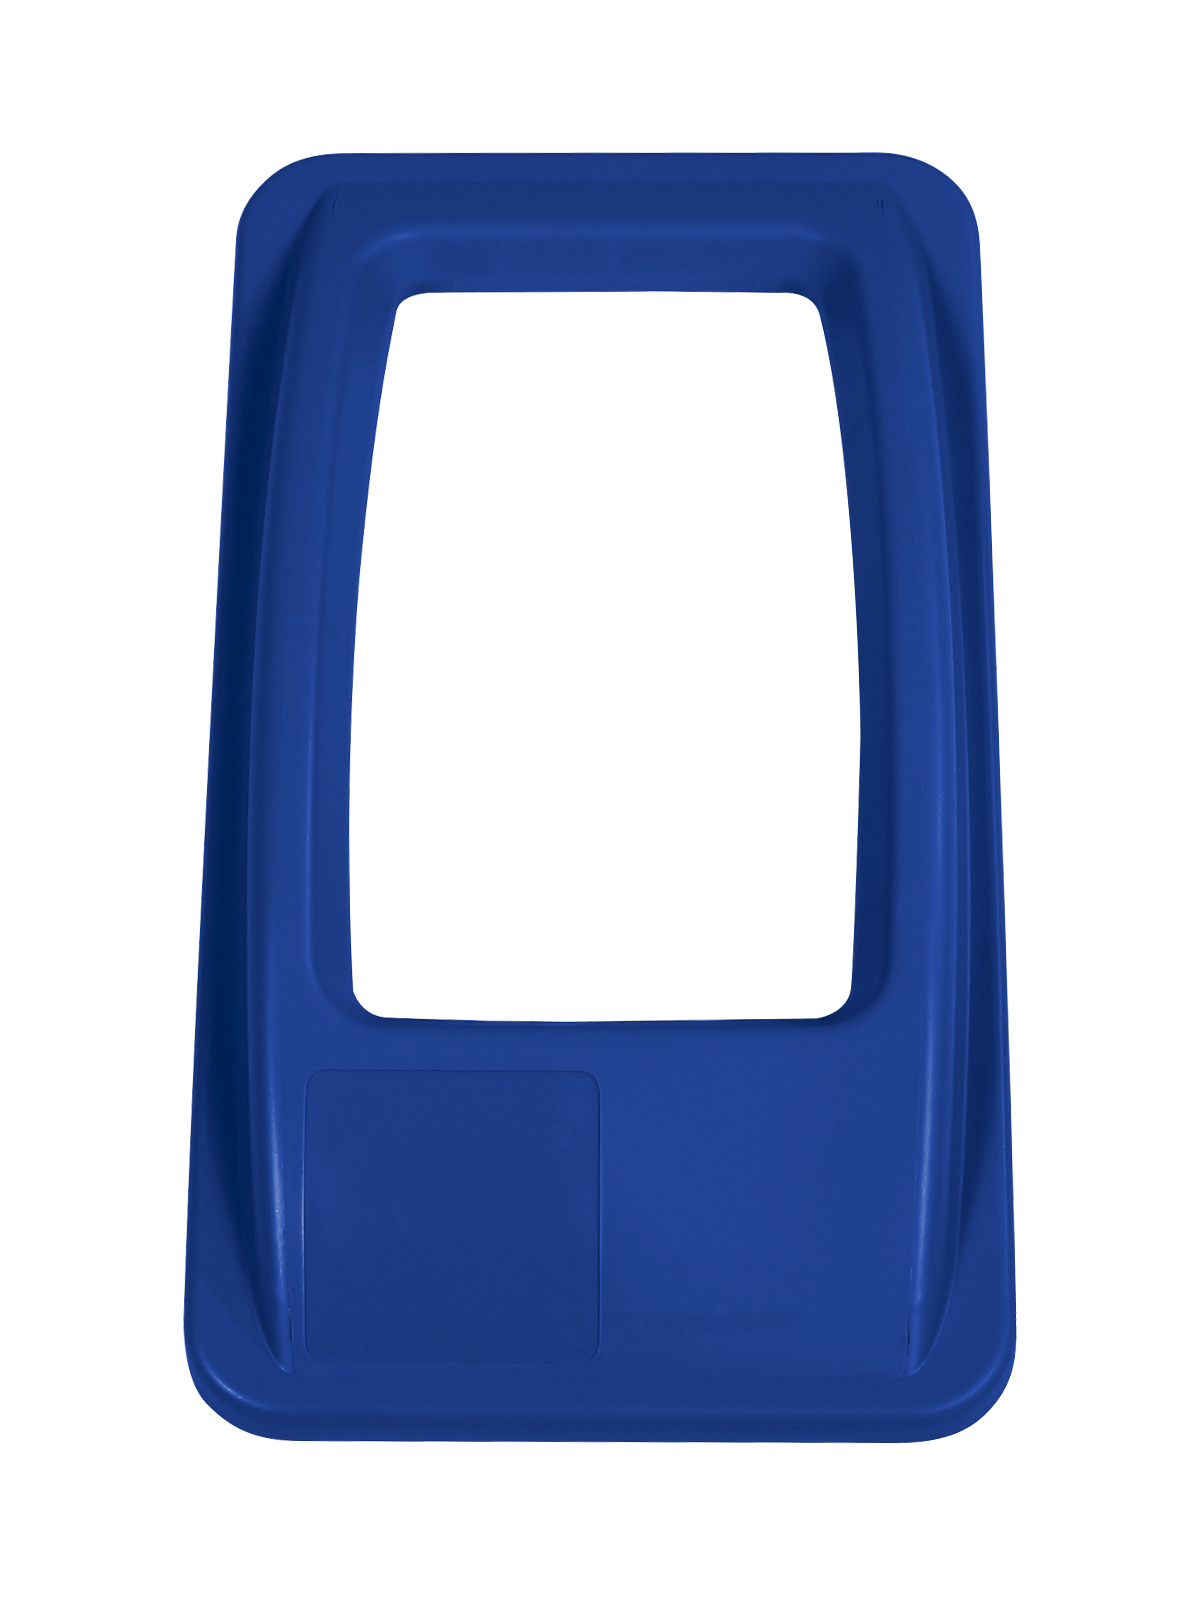 WASTE WATCHER - Lid - Full - Royal Blue